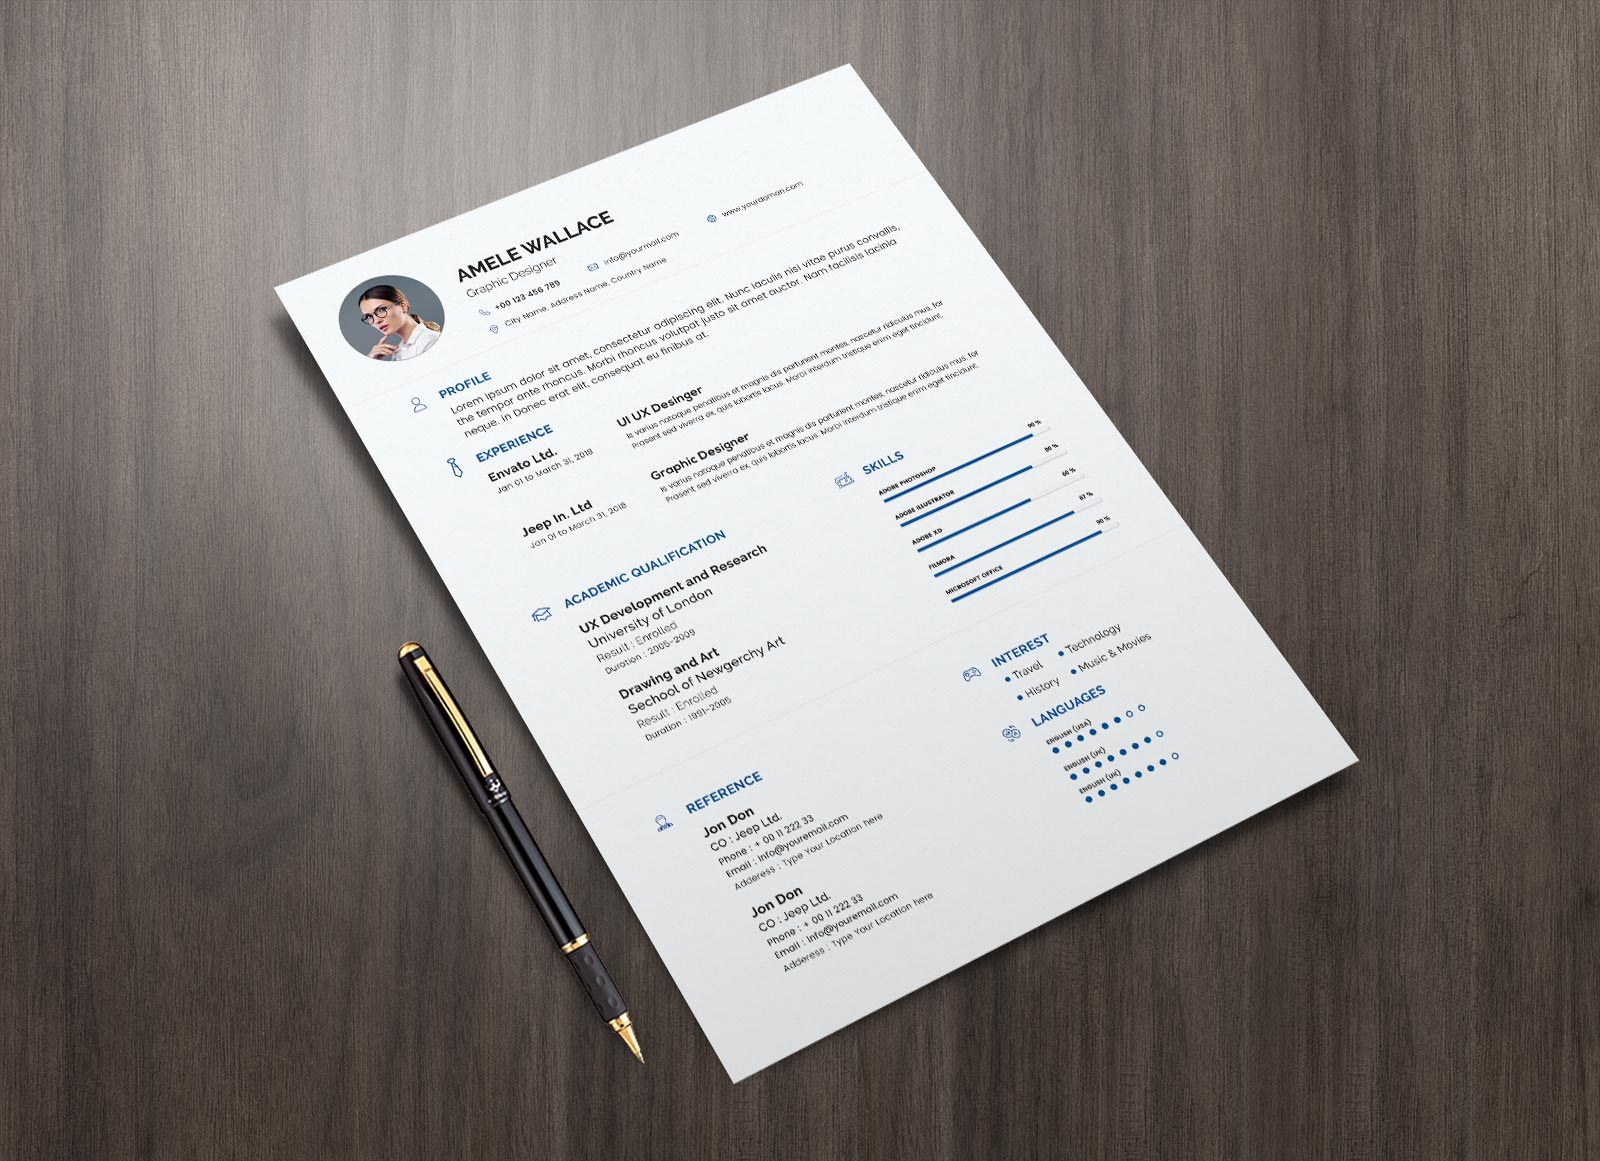 Free-Simple-Resume-Template-in-Photoshop-PSD-Format-